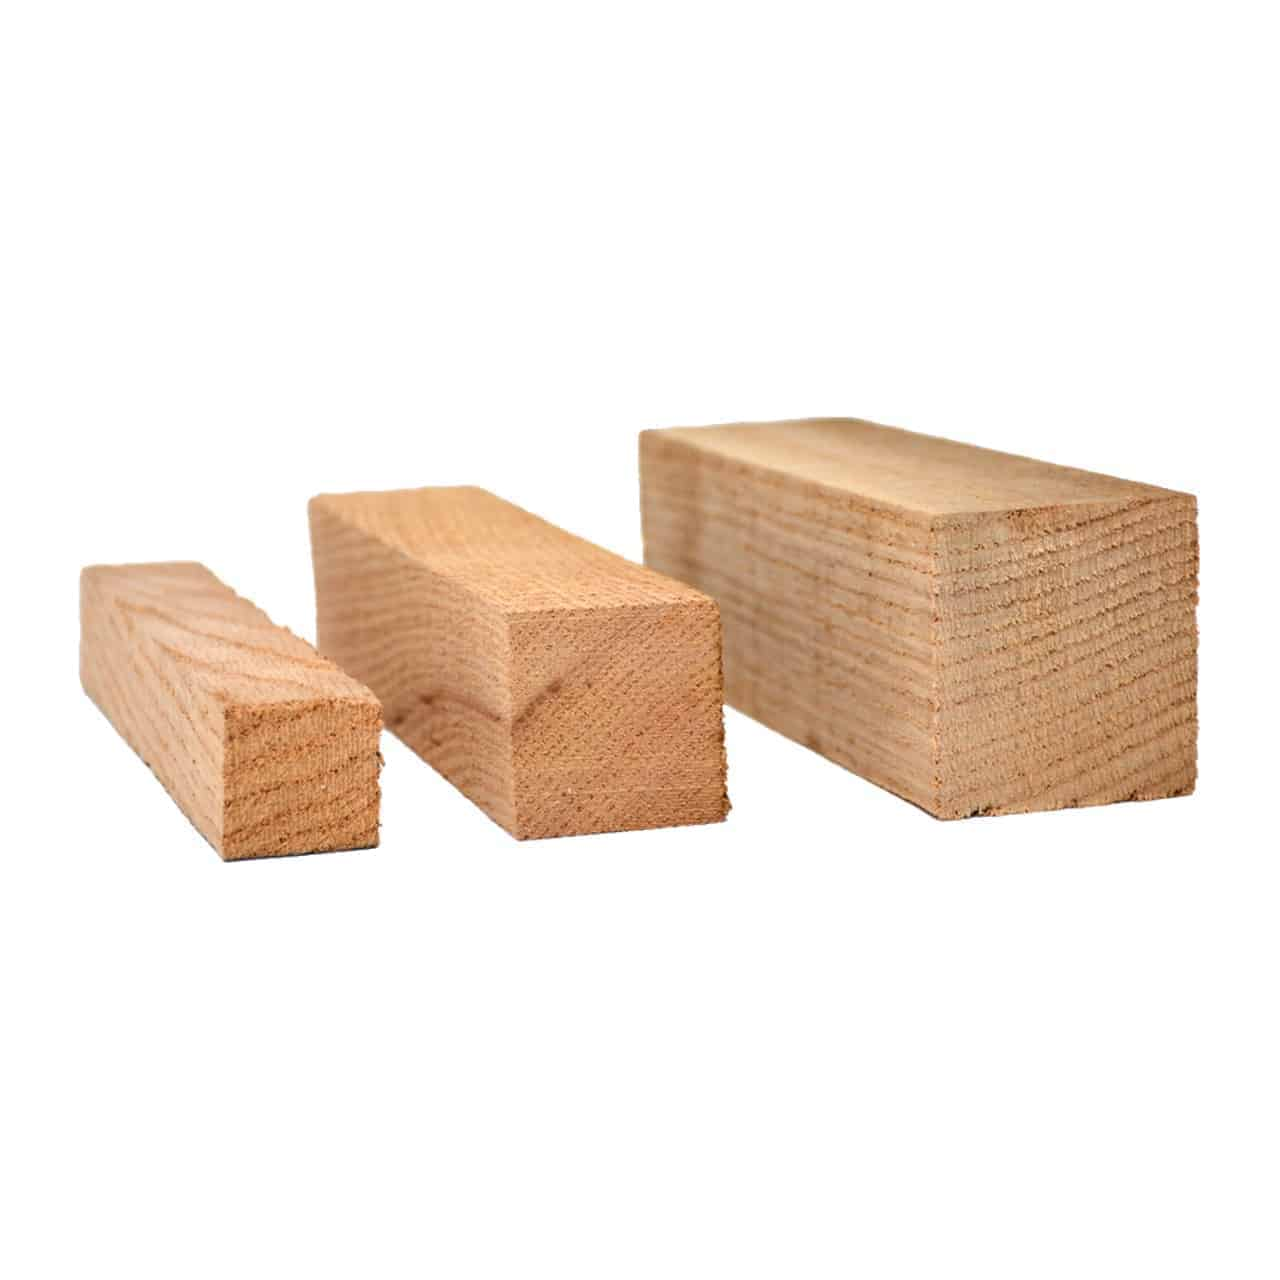 Hardwood Blocks